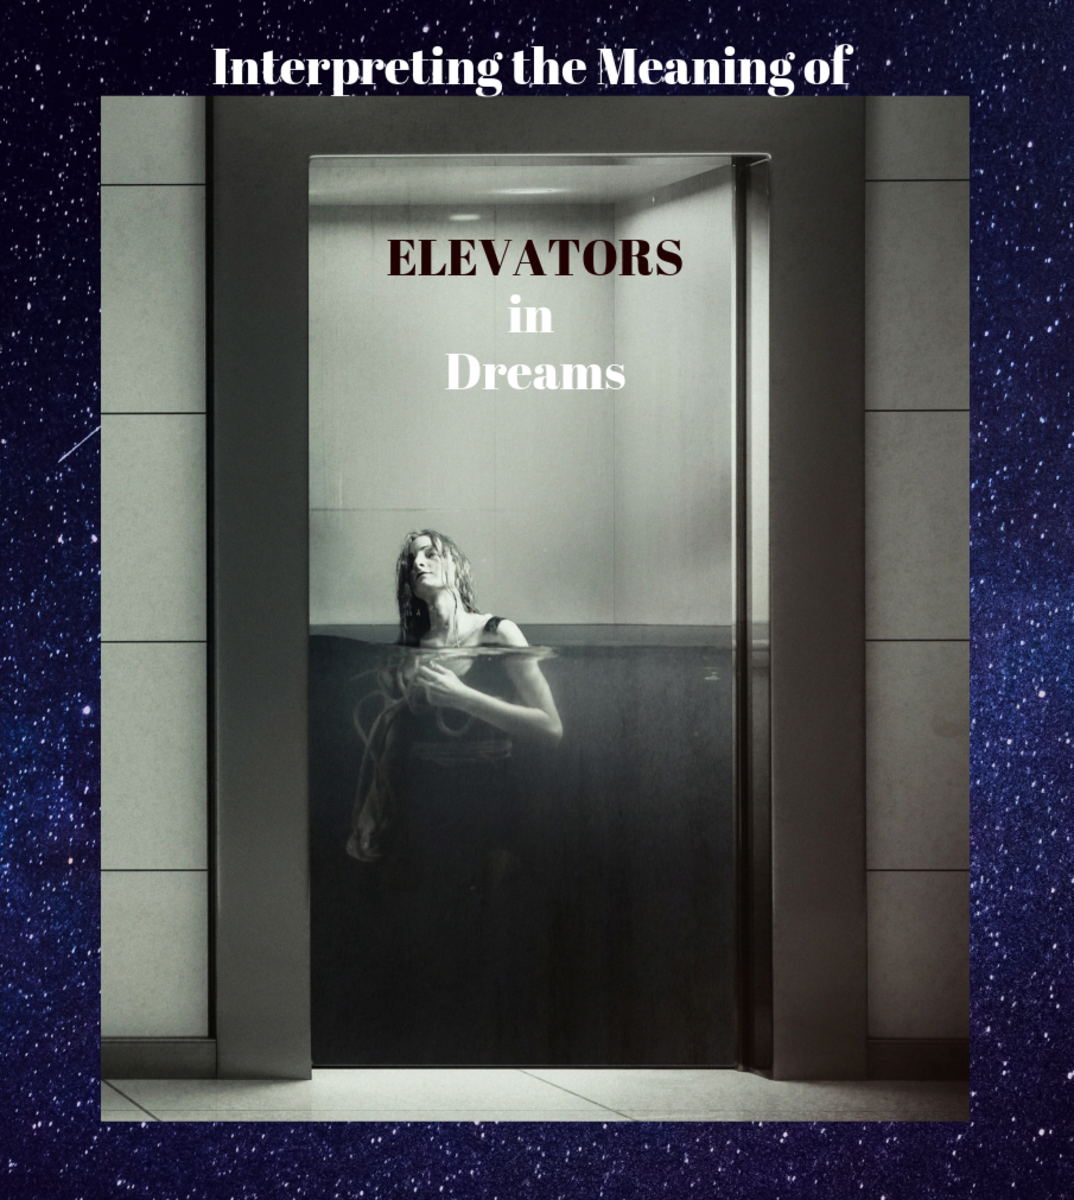 7 Meanings of Dreams About Elevators—Including Impostor Syndrome